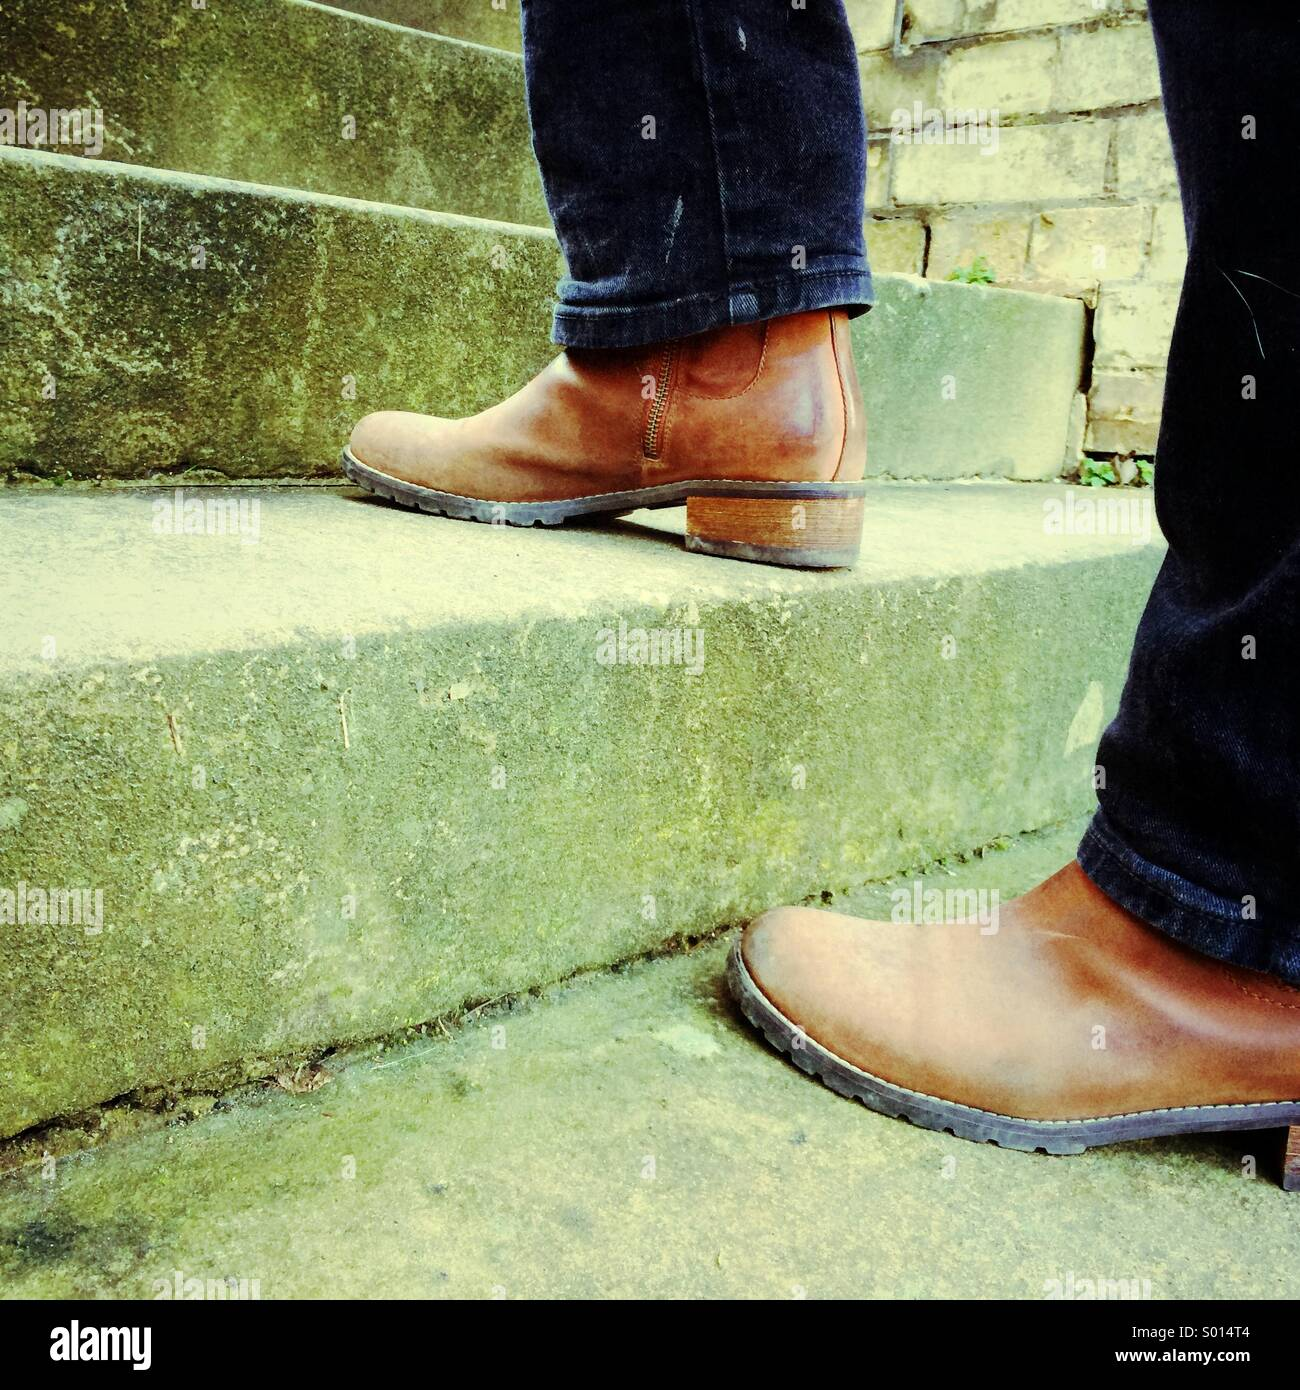 Woman's legs in black jeans and brown boots shown climbing stone steps - Stock Image